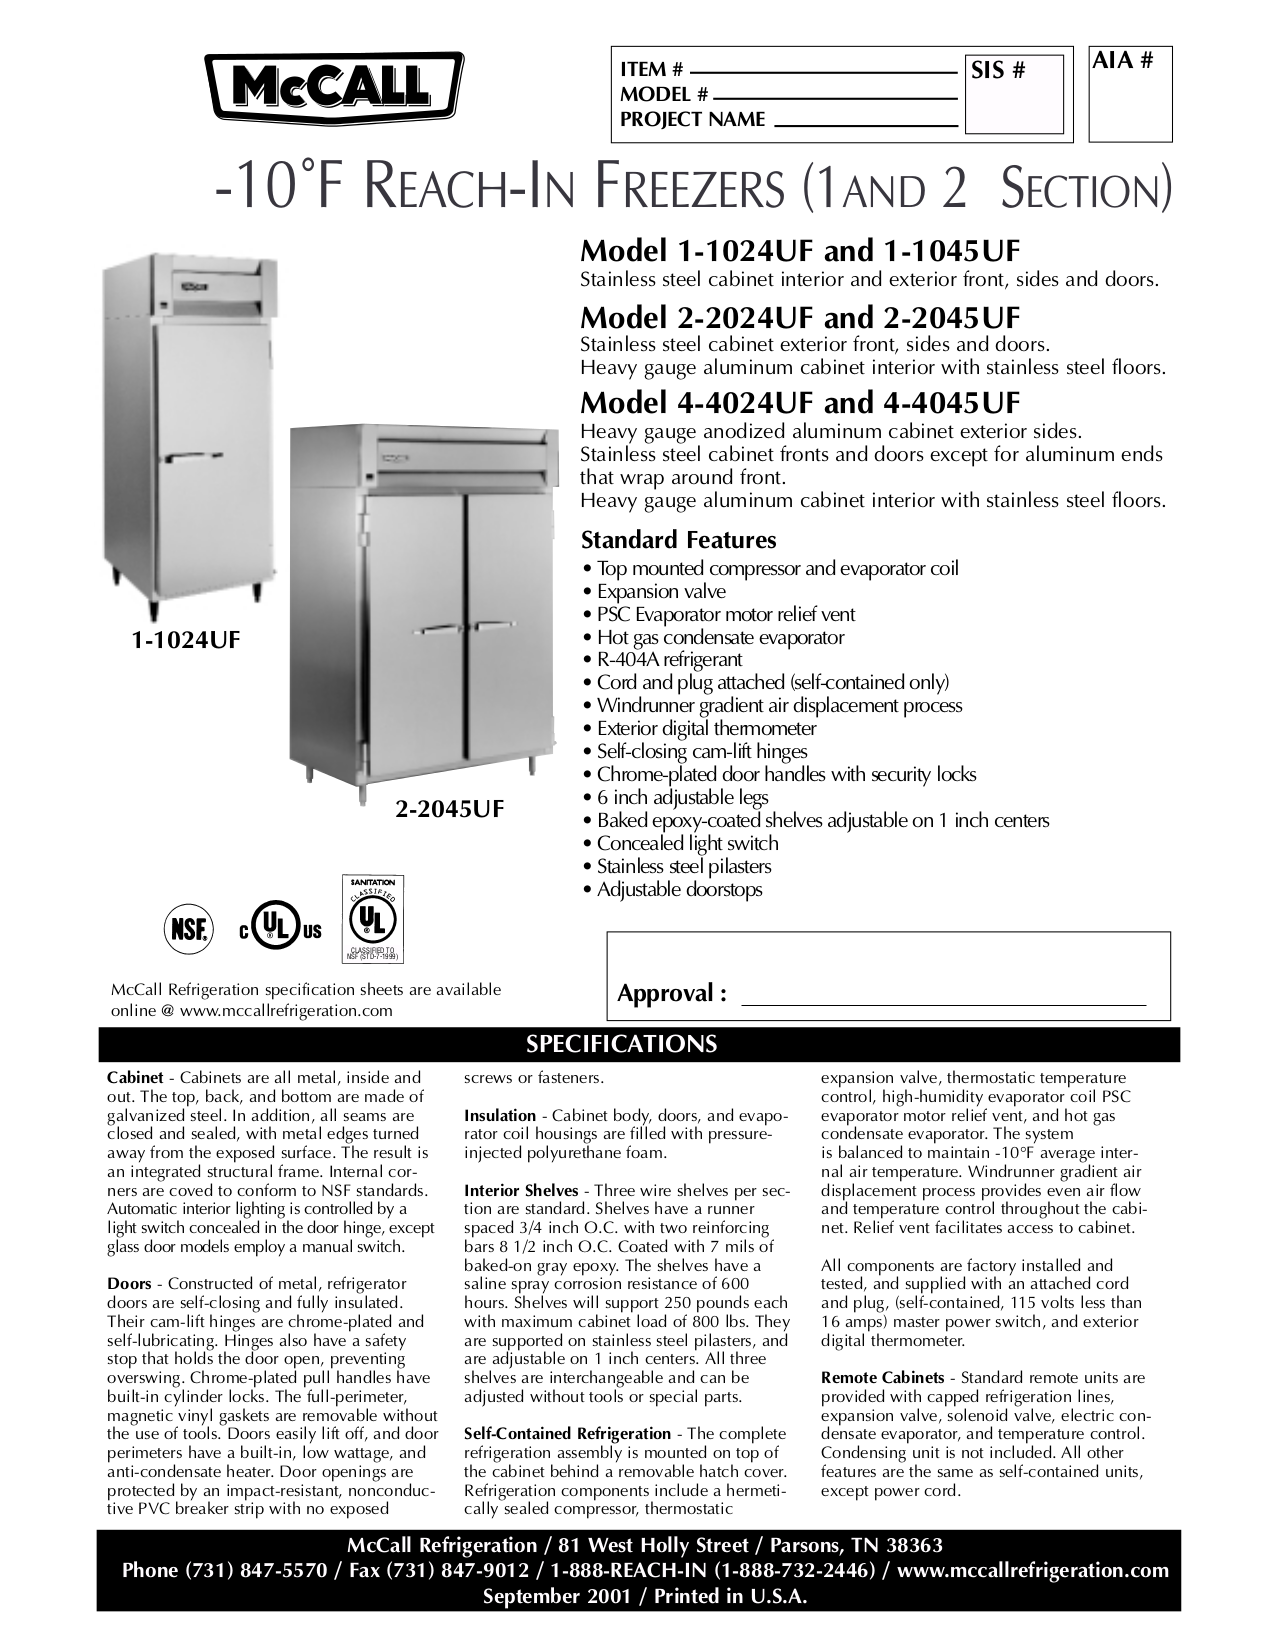 pdf for McCall Refrigerator ST-27-2 manual